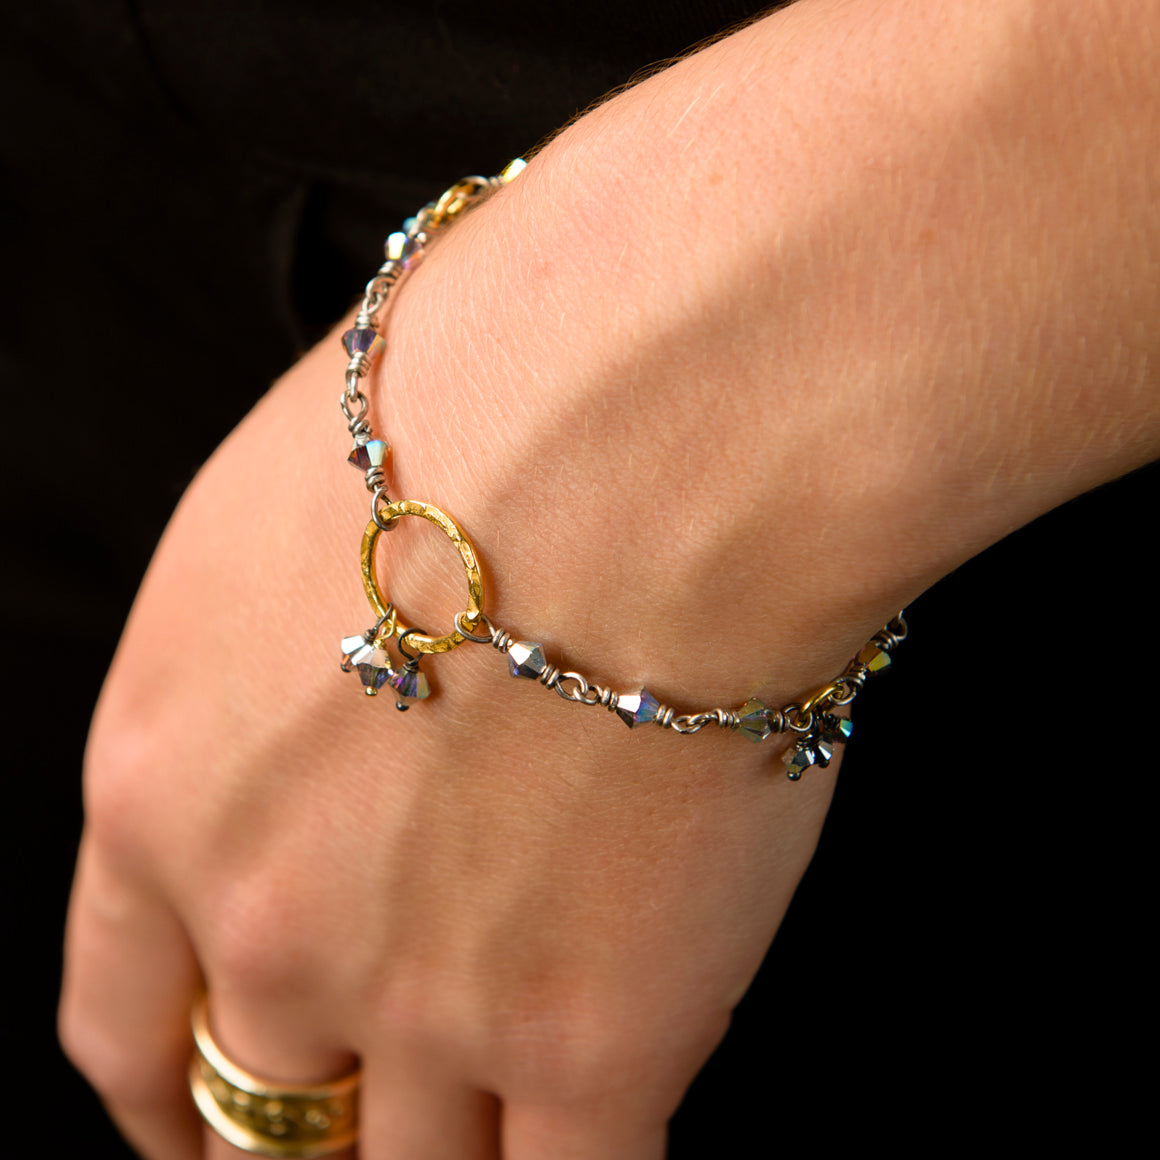 Anais Oxidised Sterling Silver Hand-Wired Bracelet with Gold-on-Silver Halo